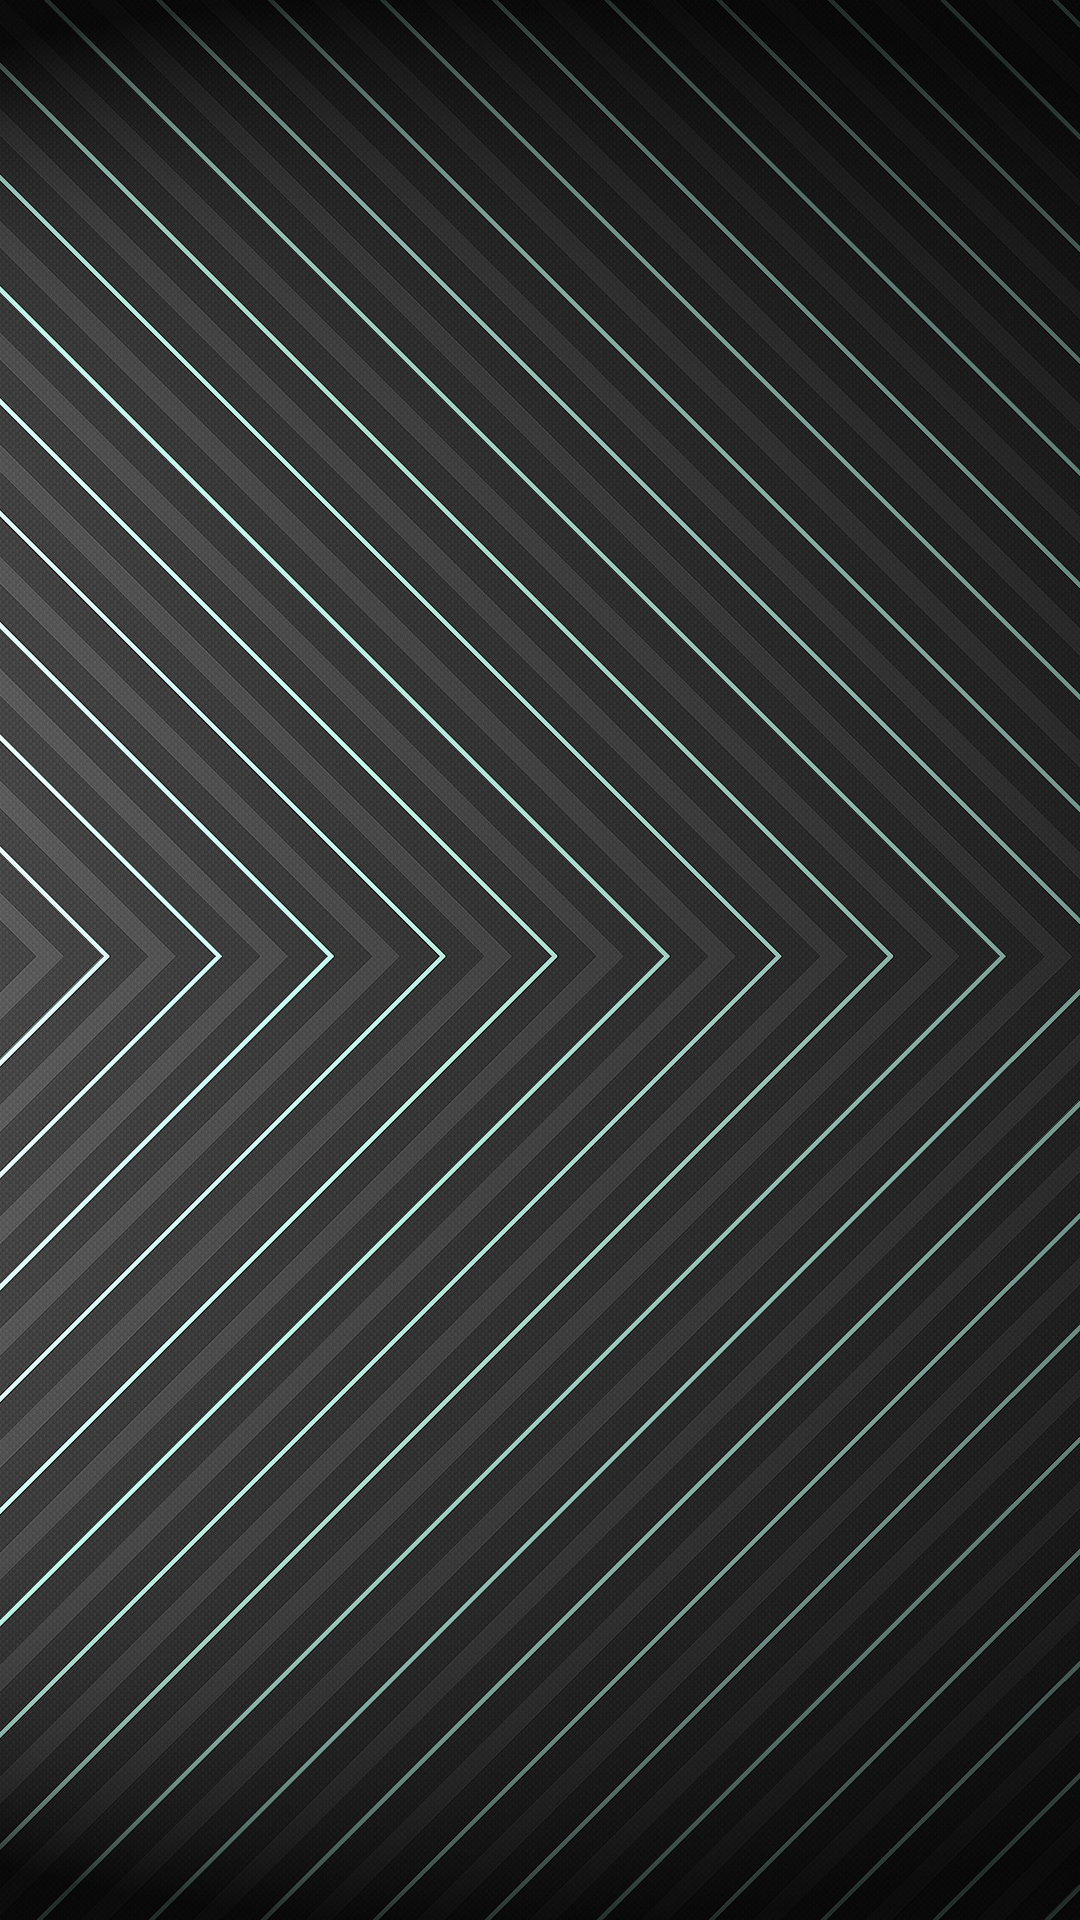 Wallpapers for galaxy minimalistic galaxy background minimalistic galaxy s4 wallpaper with green lines on black background and gradient effect 1080x1920 voltagebd Gallery